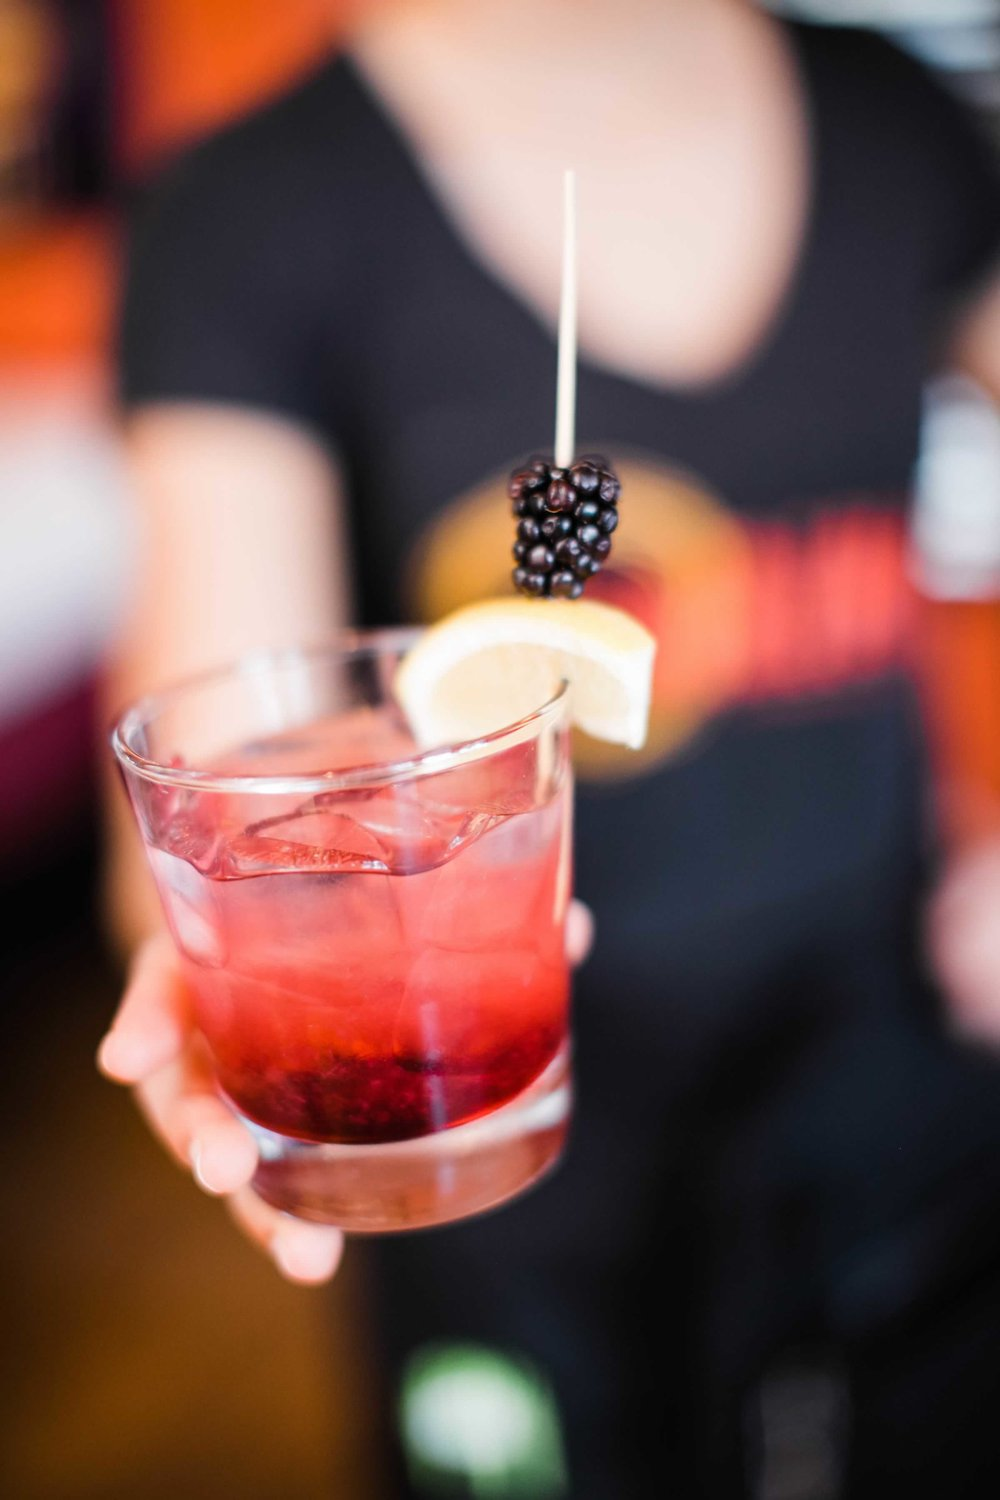 gin bramble - beefeater gin, blackberry reduction, simple syrup, lemon juice 13